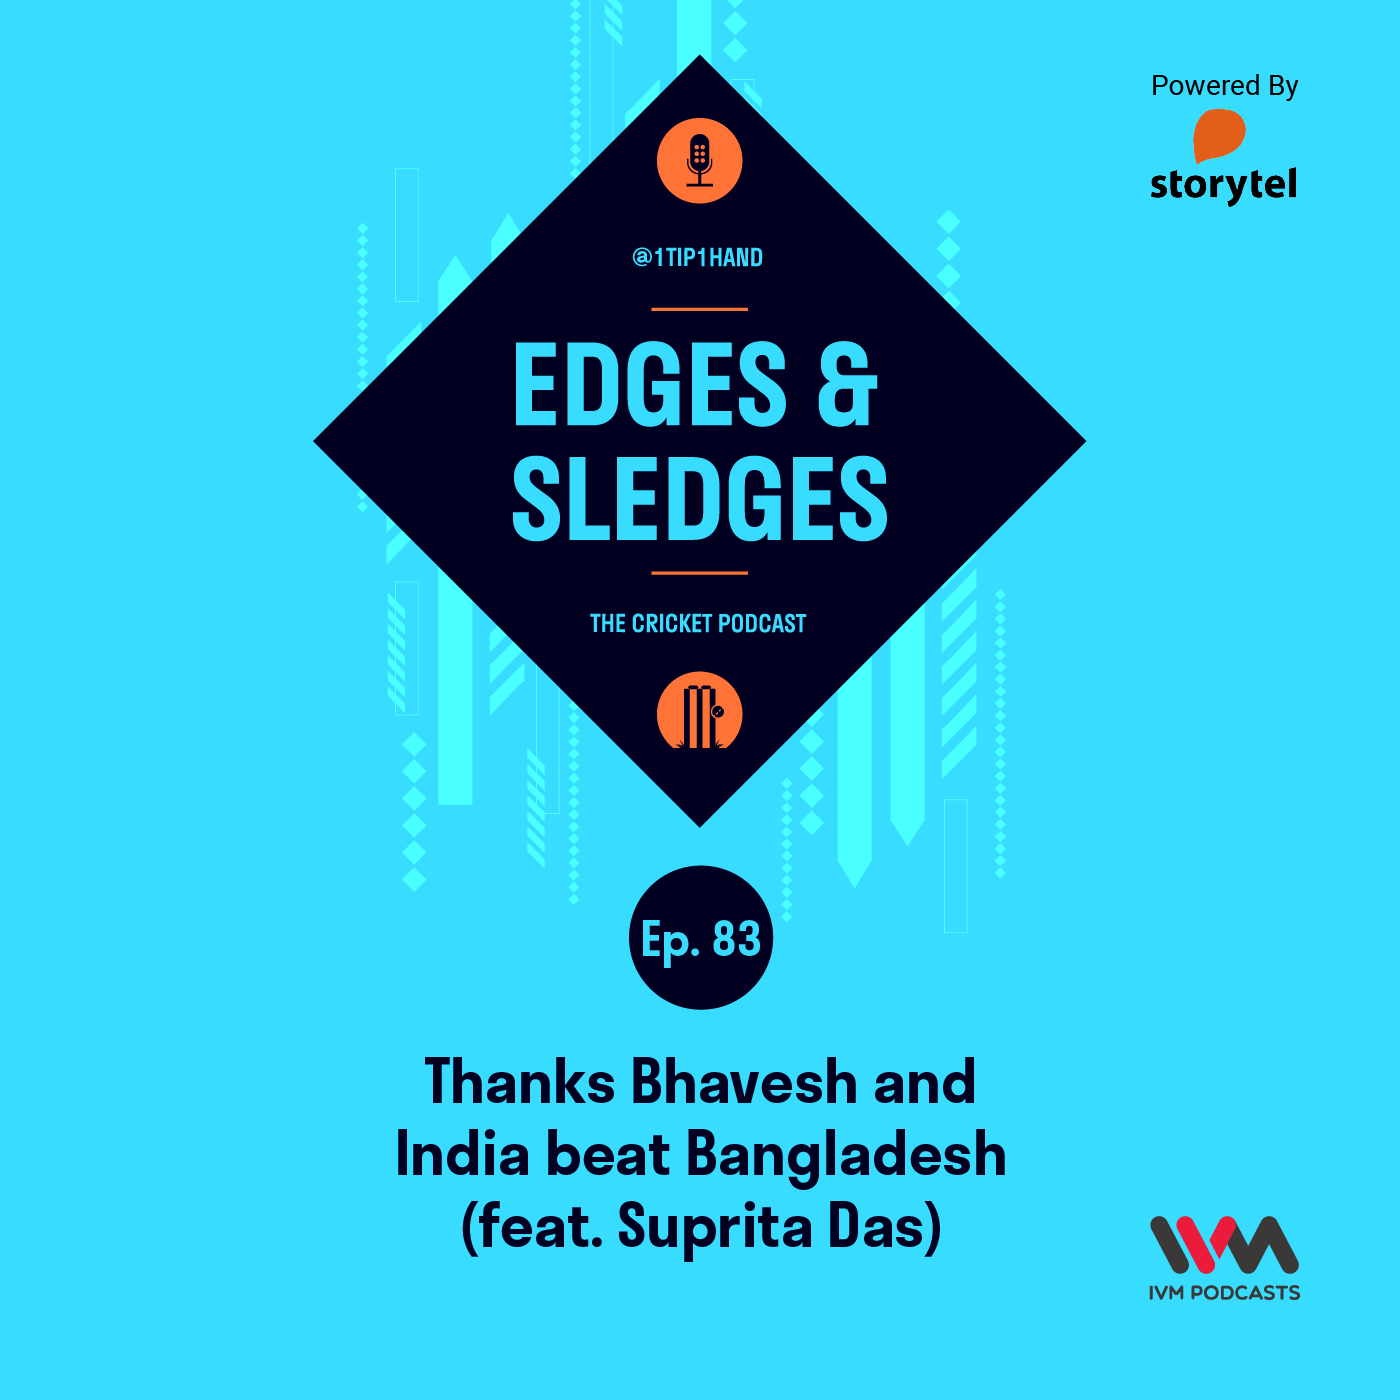 Ep. 83: Thanks Bhavesh and India beat Bangladesh (feat. Suprita Das)